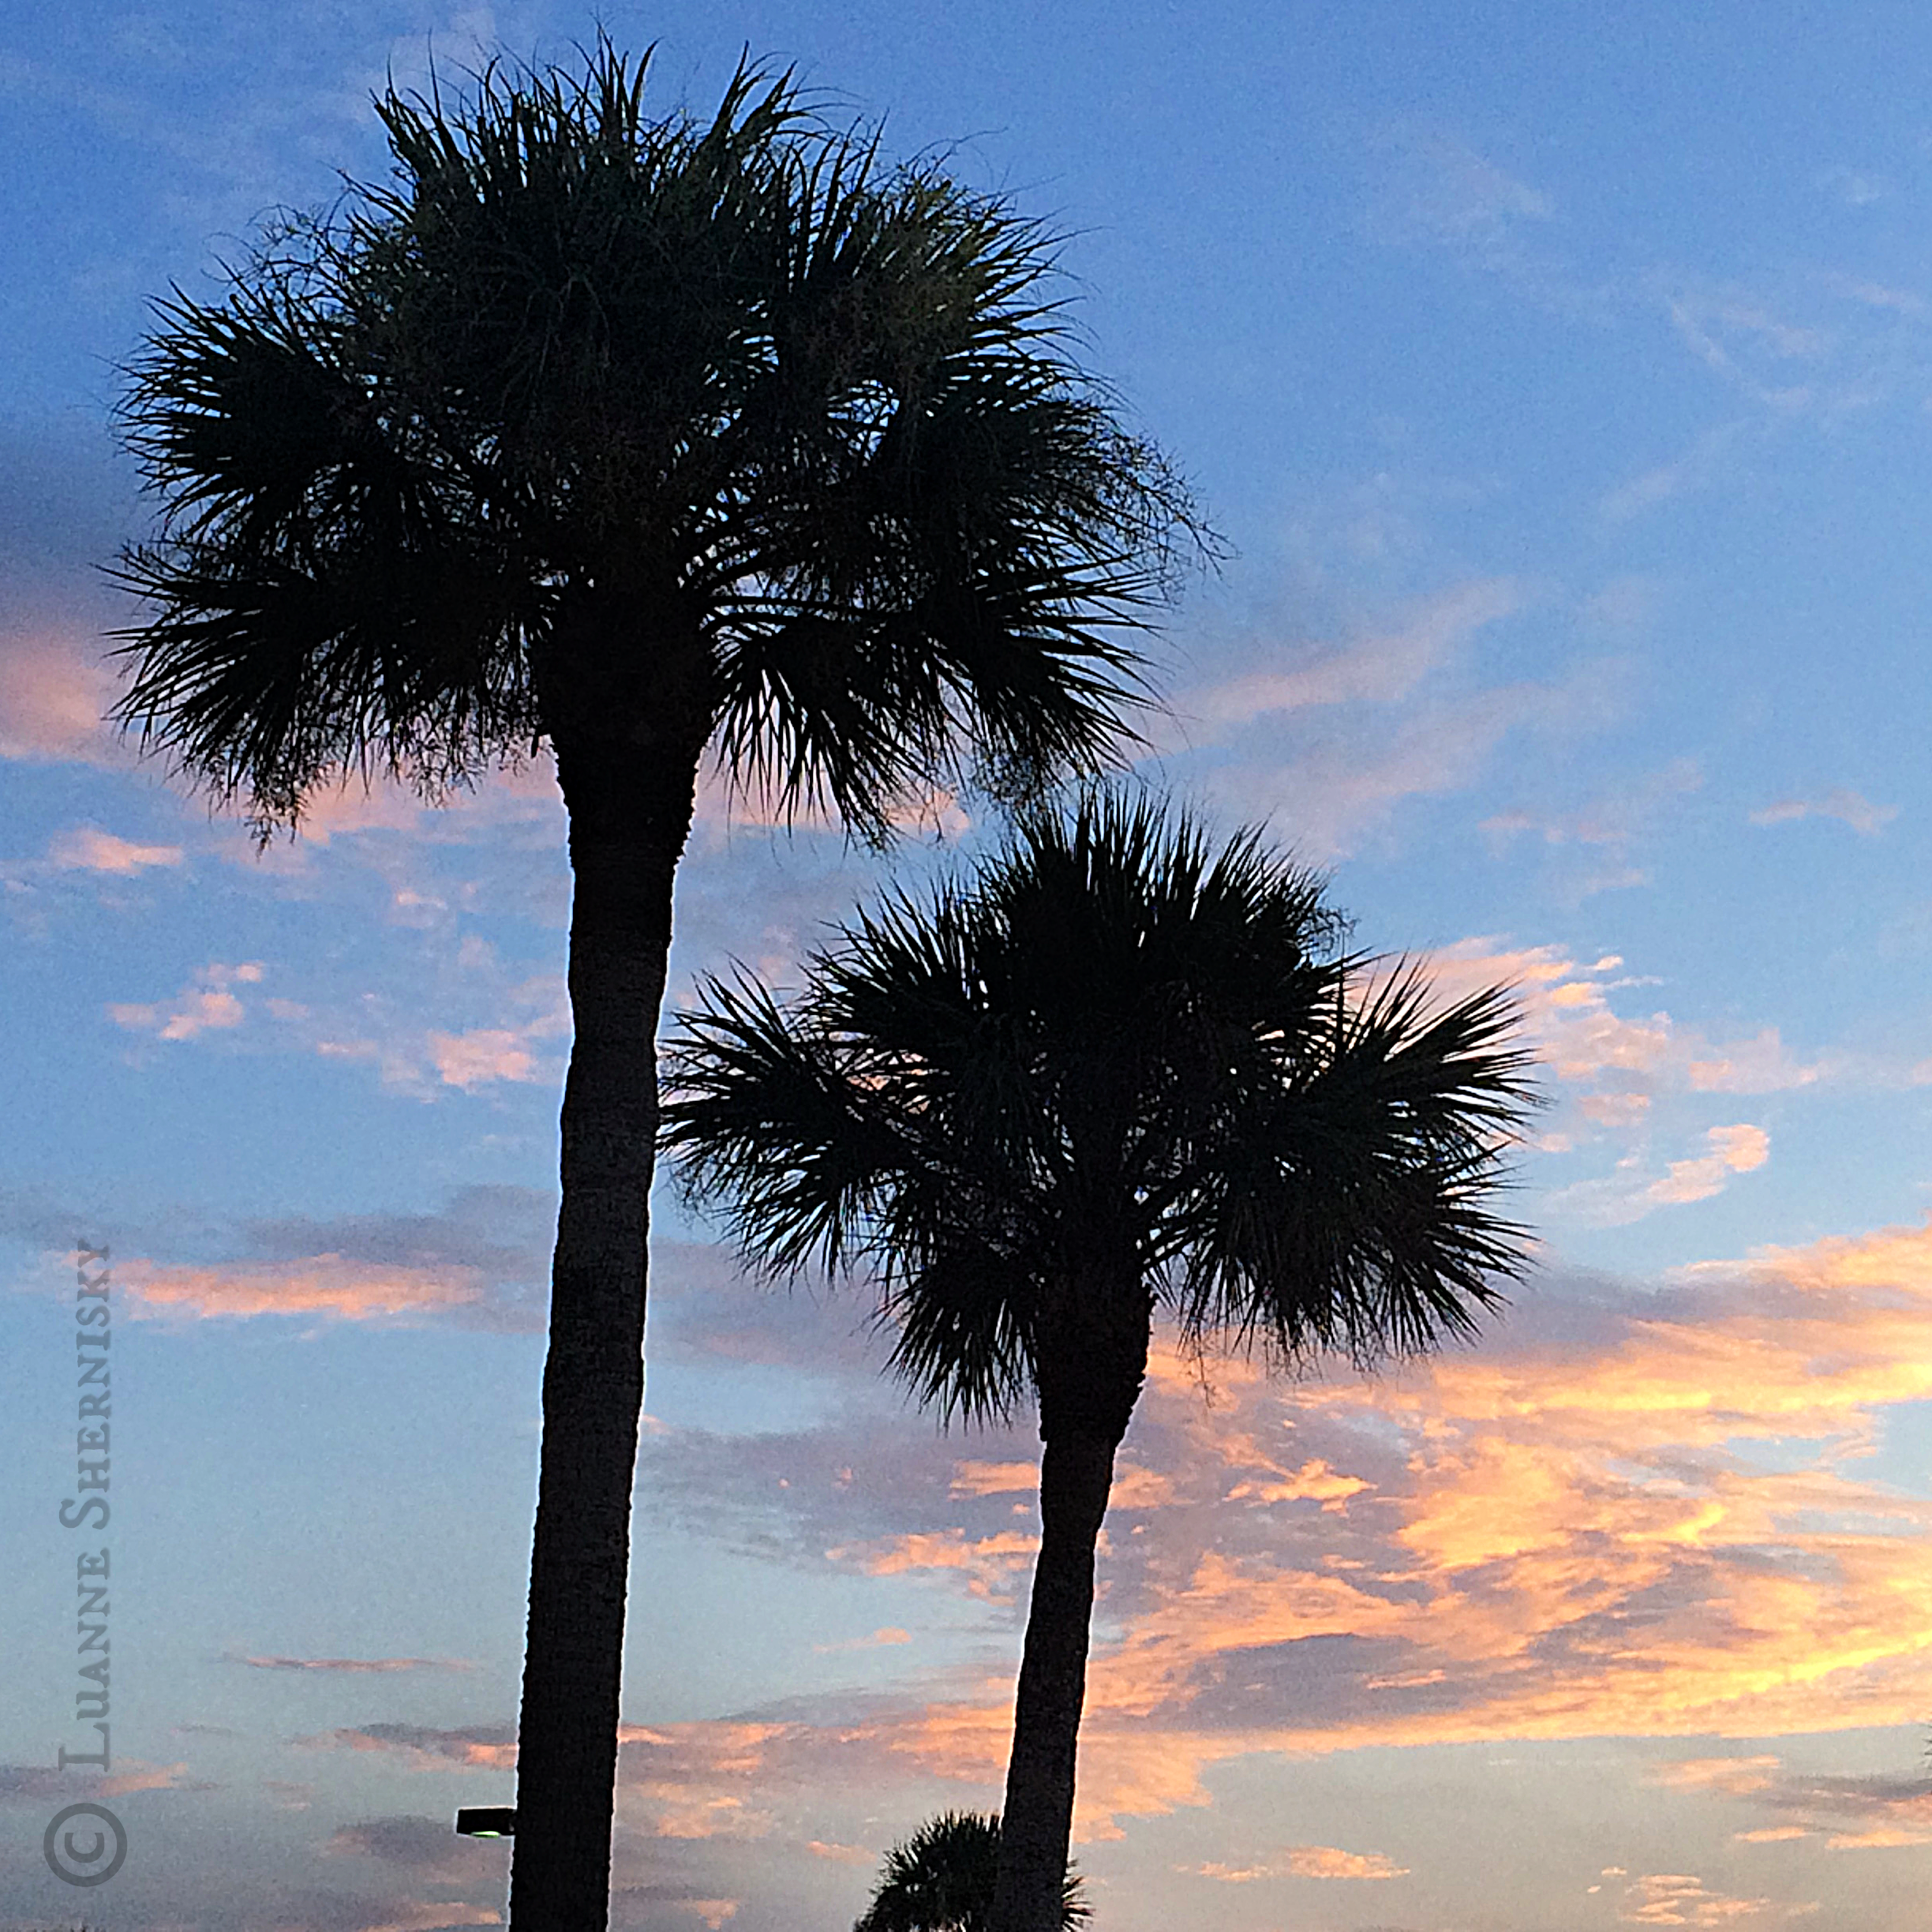 Silhouette of two palm trees against the sunset